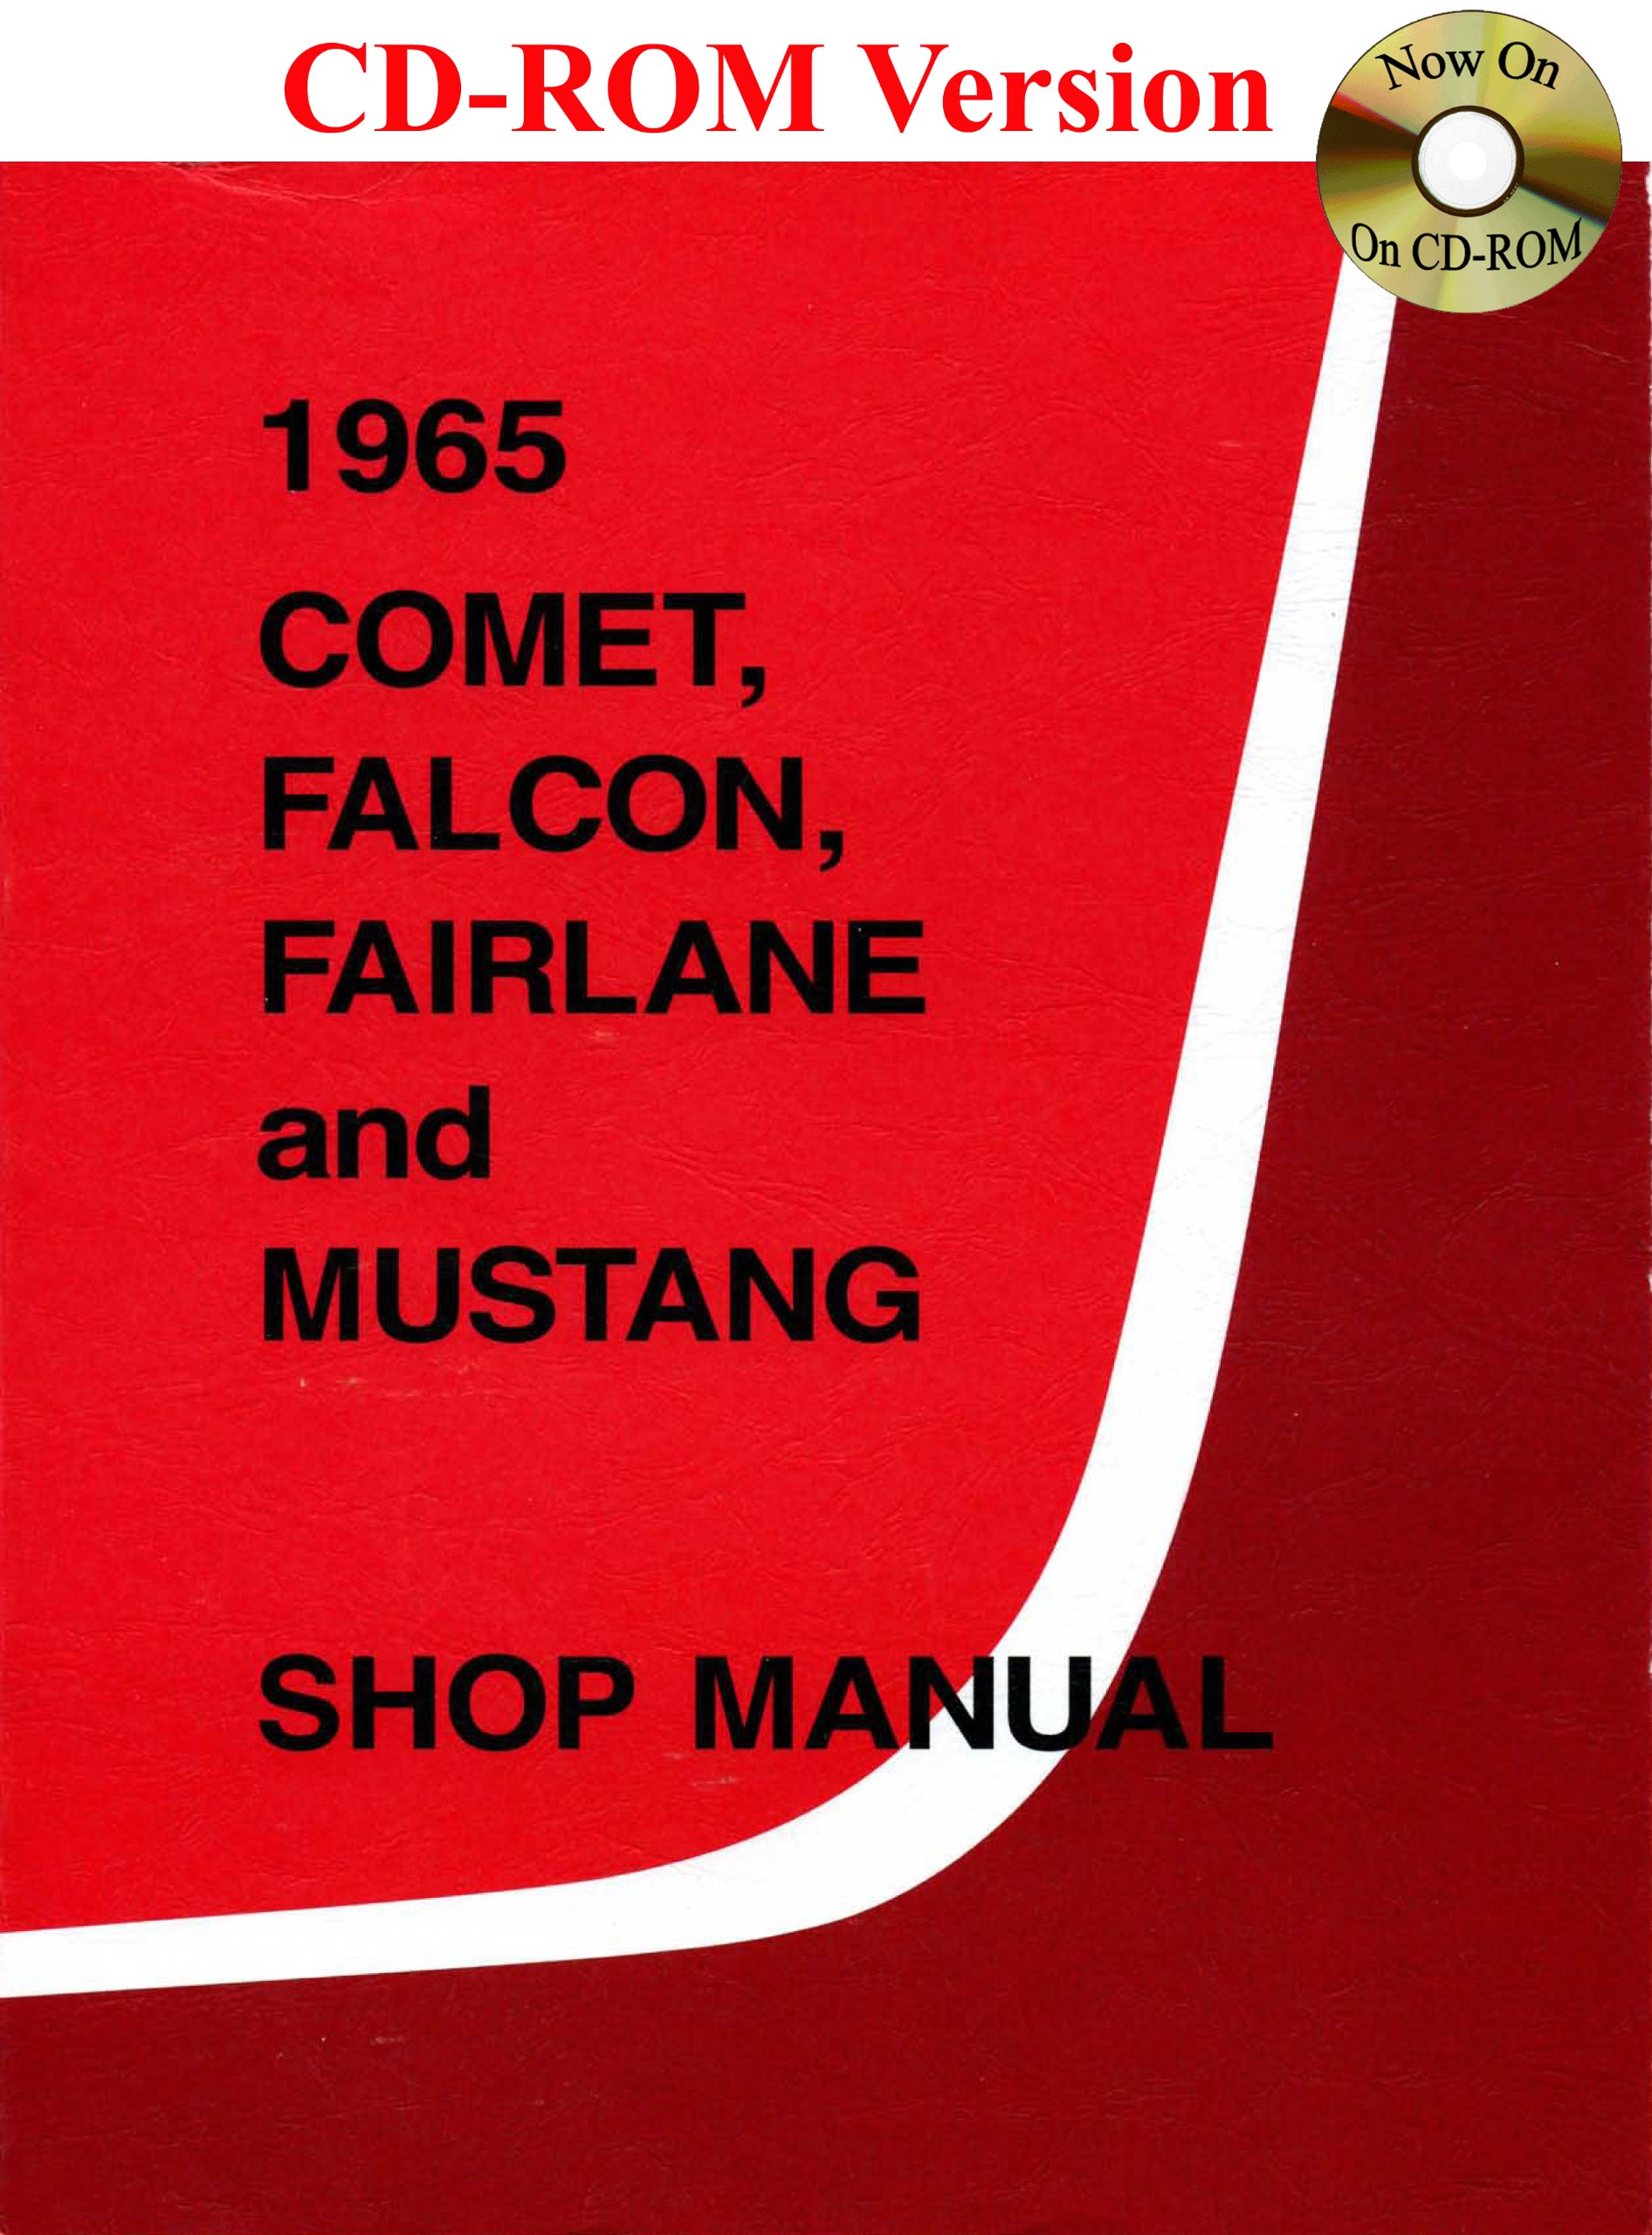 1965 Comet Falcon Fairlane And Mustang Shop Manual Ford Motor Wiring Diagram Company David E Leblanc 9780967321127 Books